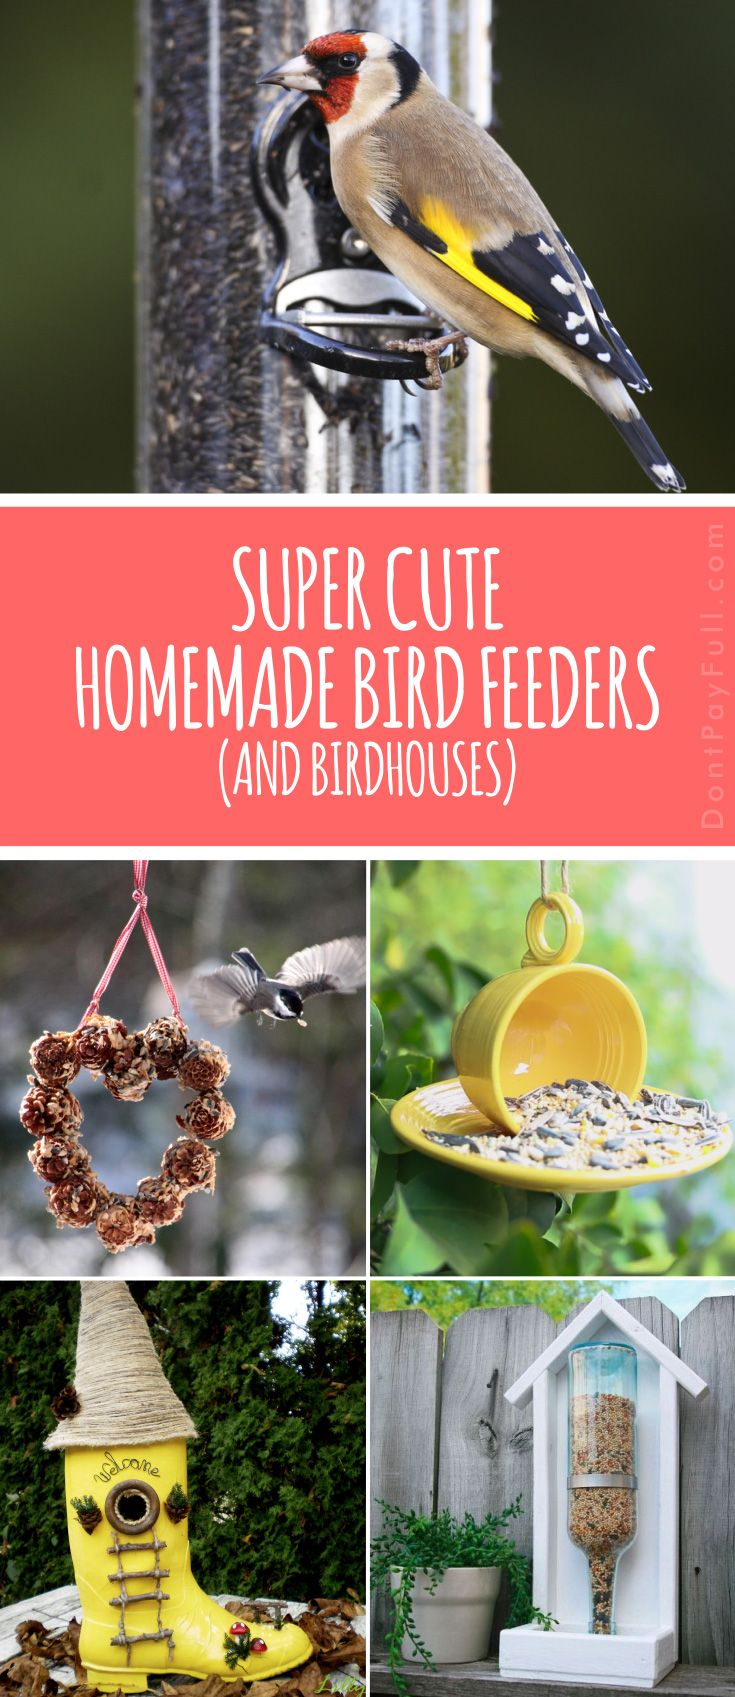 Welcome Spring with These Super Cute Homemade Bird Feeders (and Birdhouses)